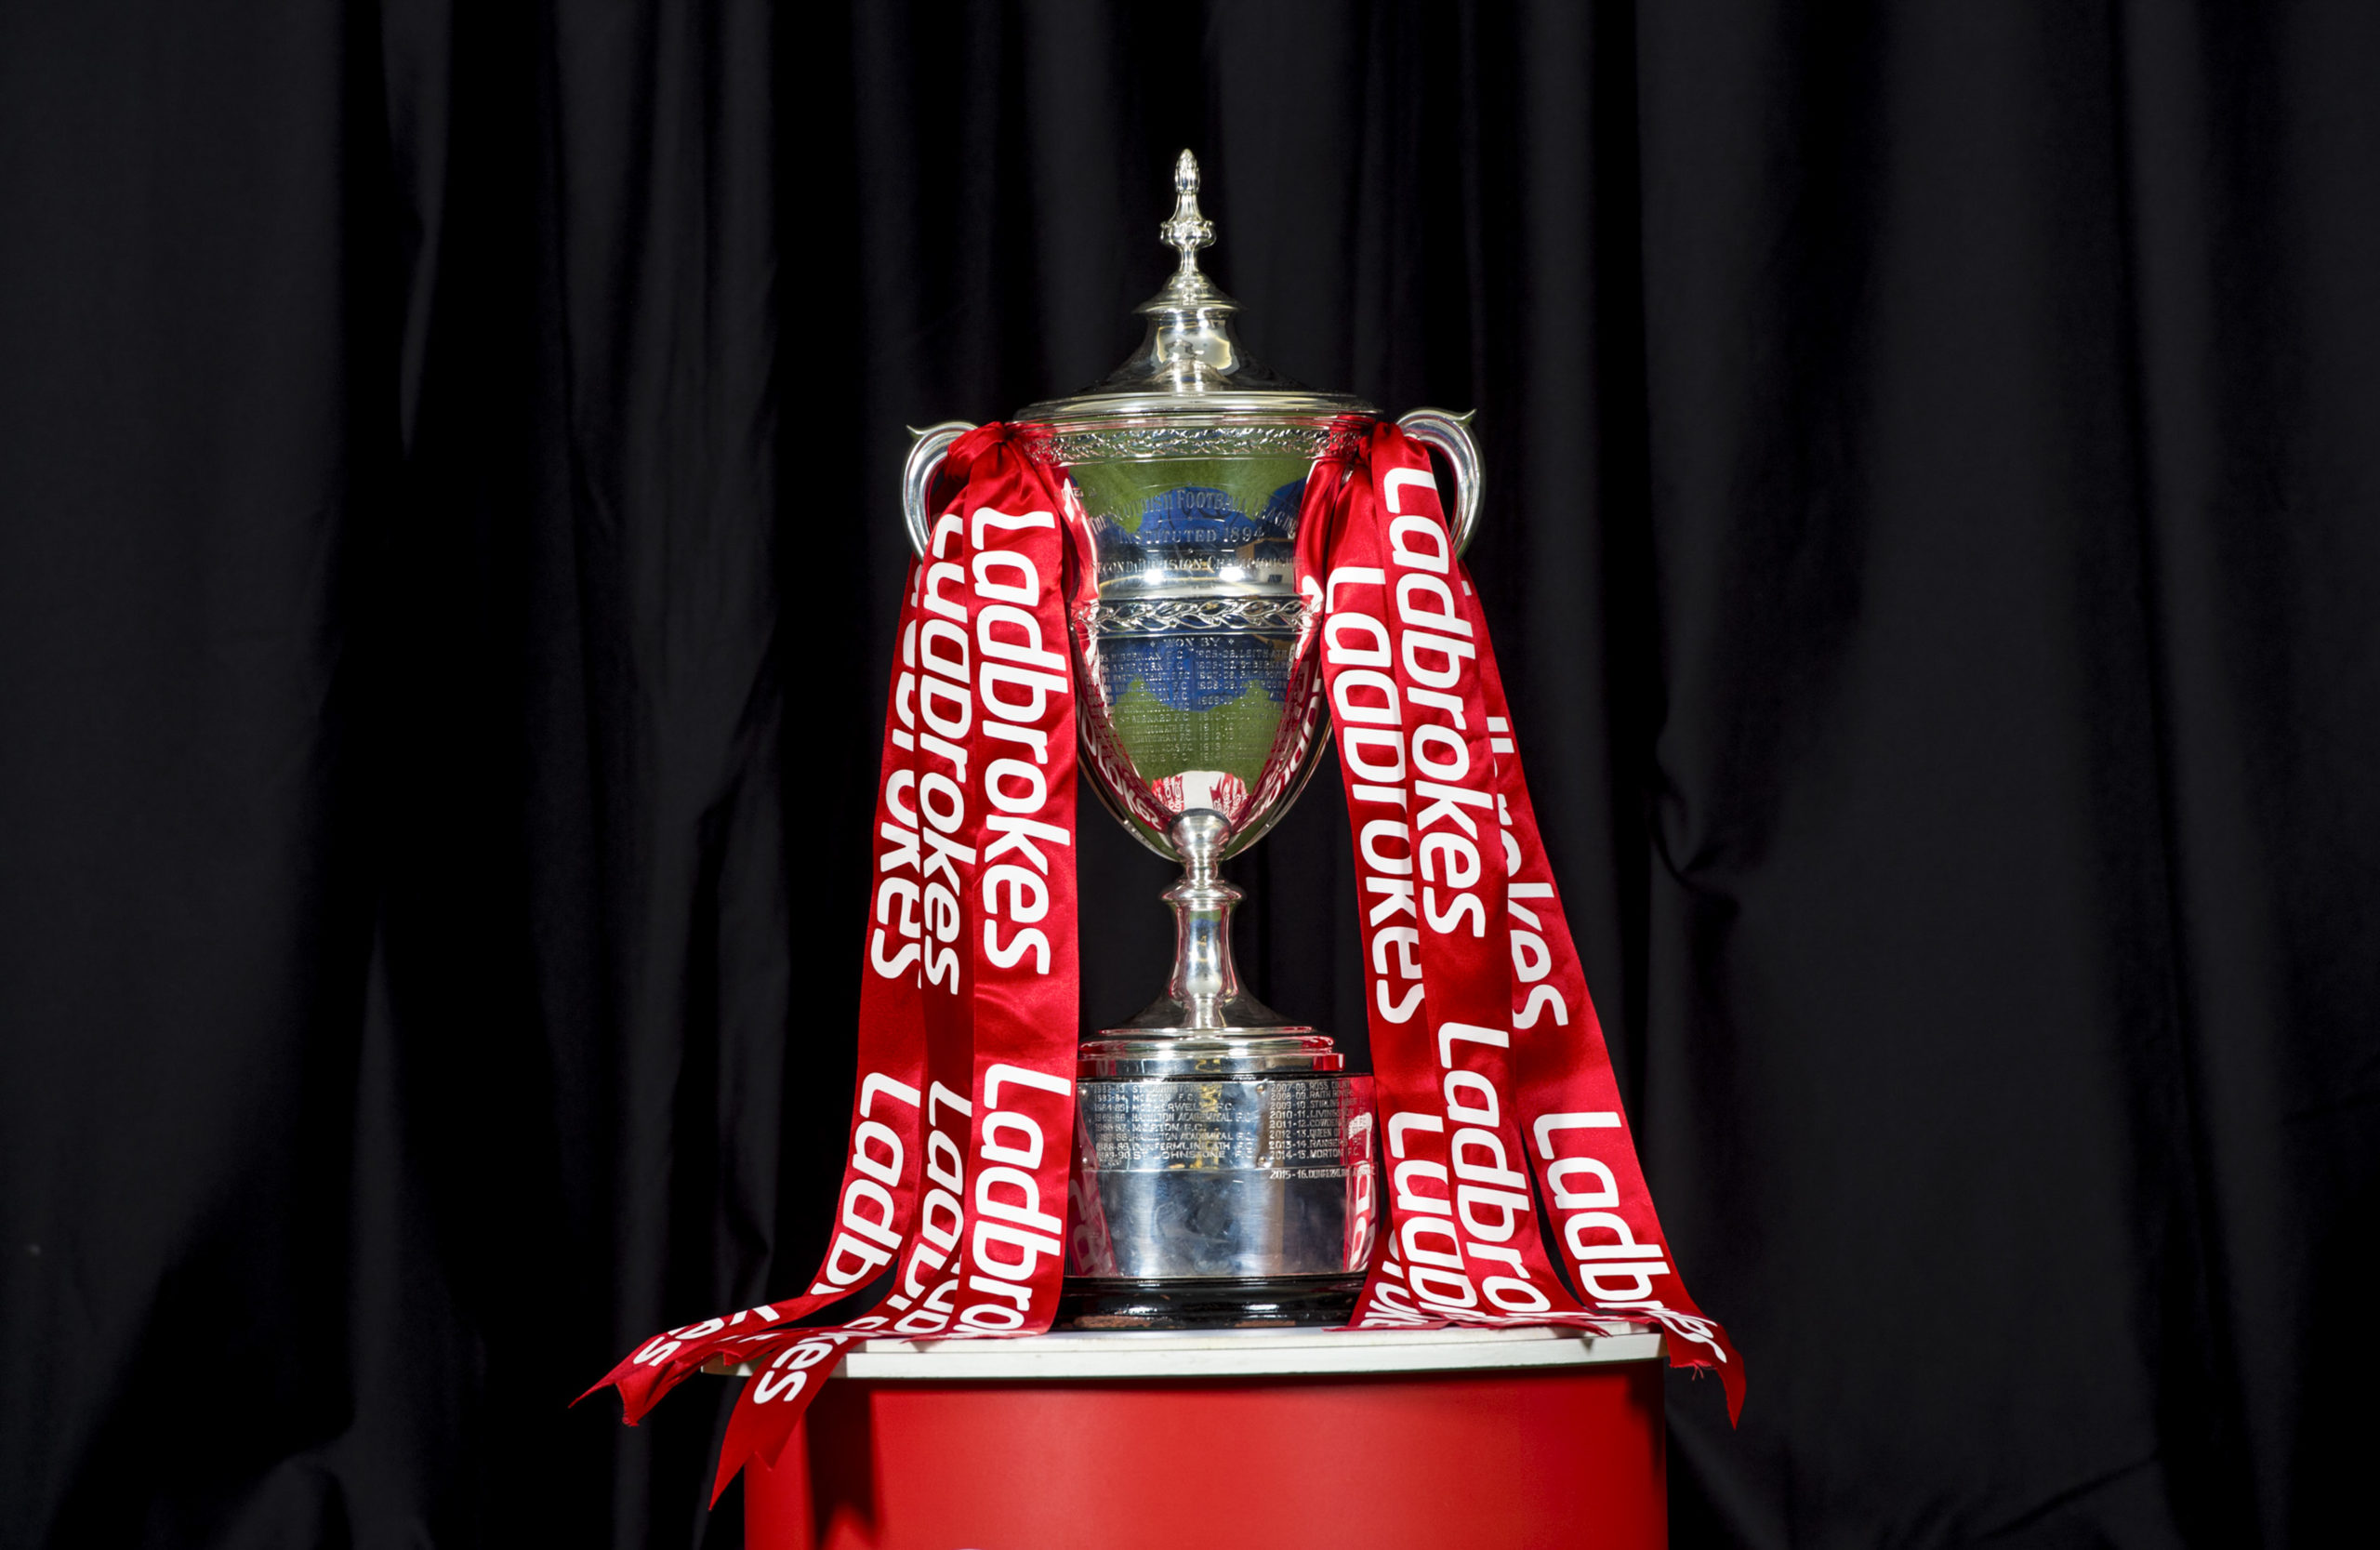 Ladbrokes League One trophy.